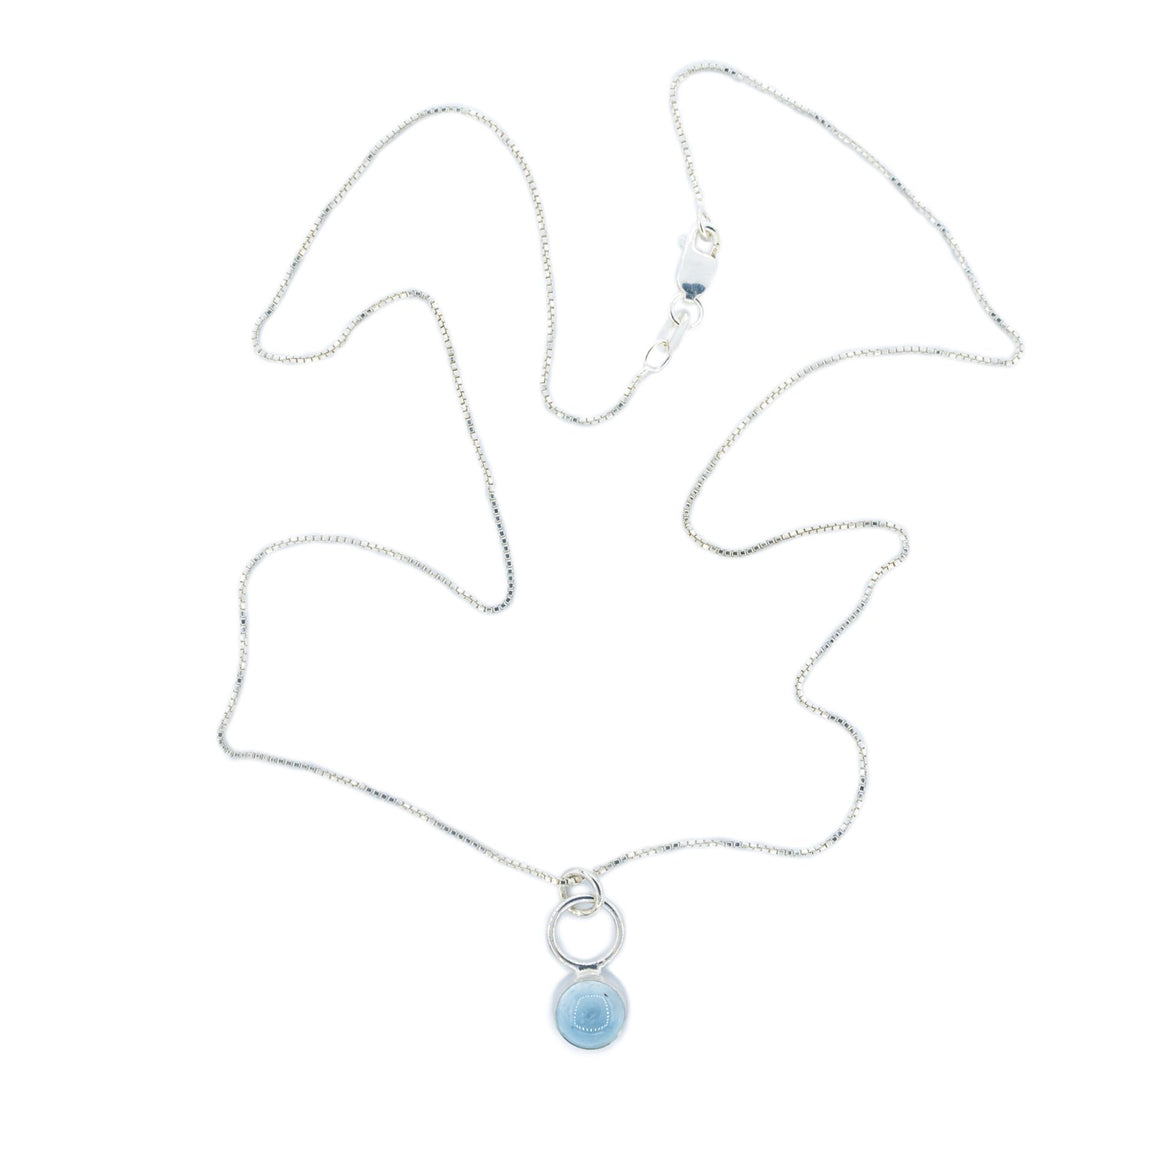 Aquamarine Drop Necklace by Original Sin Jewelry in Silver